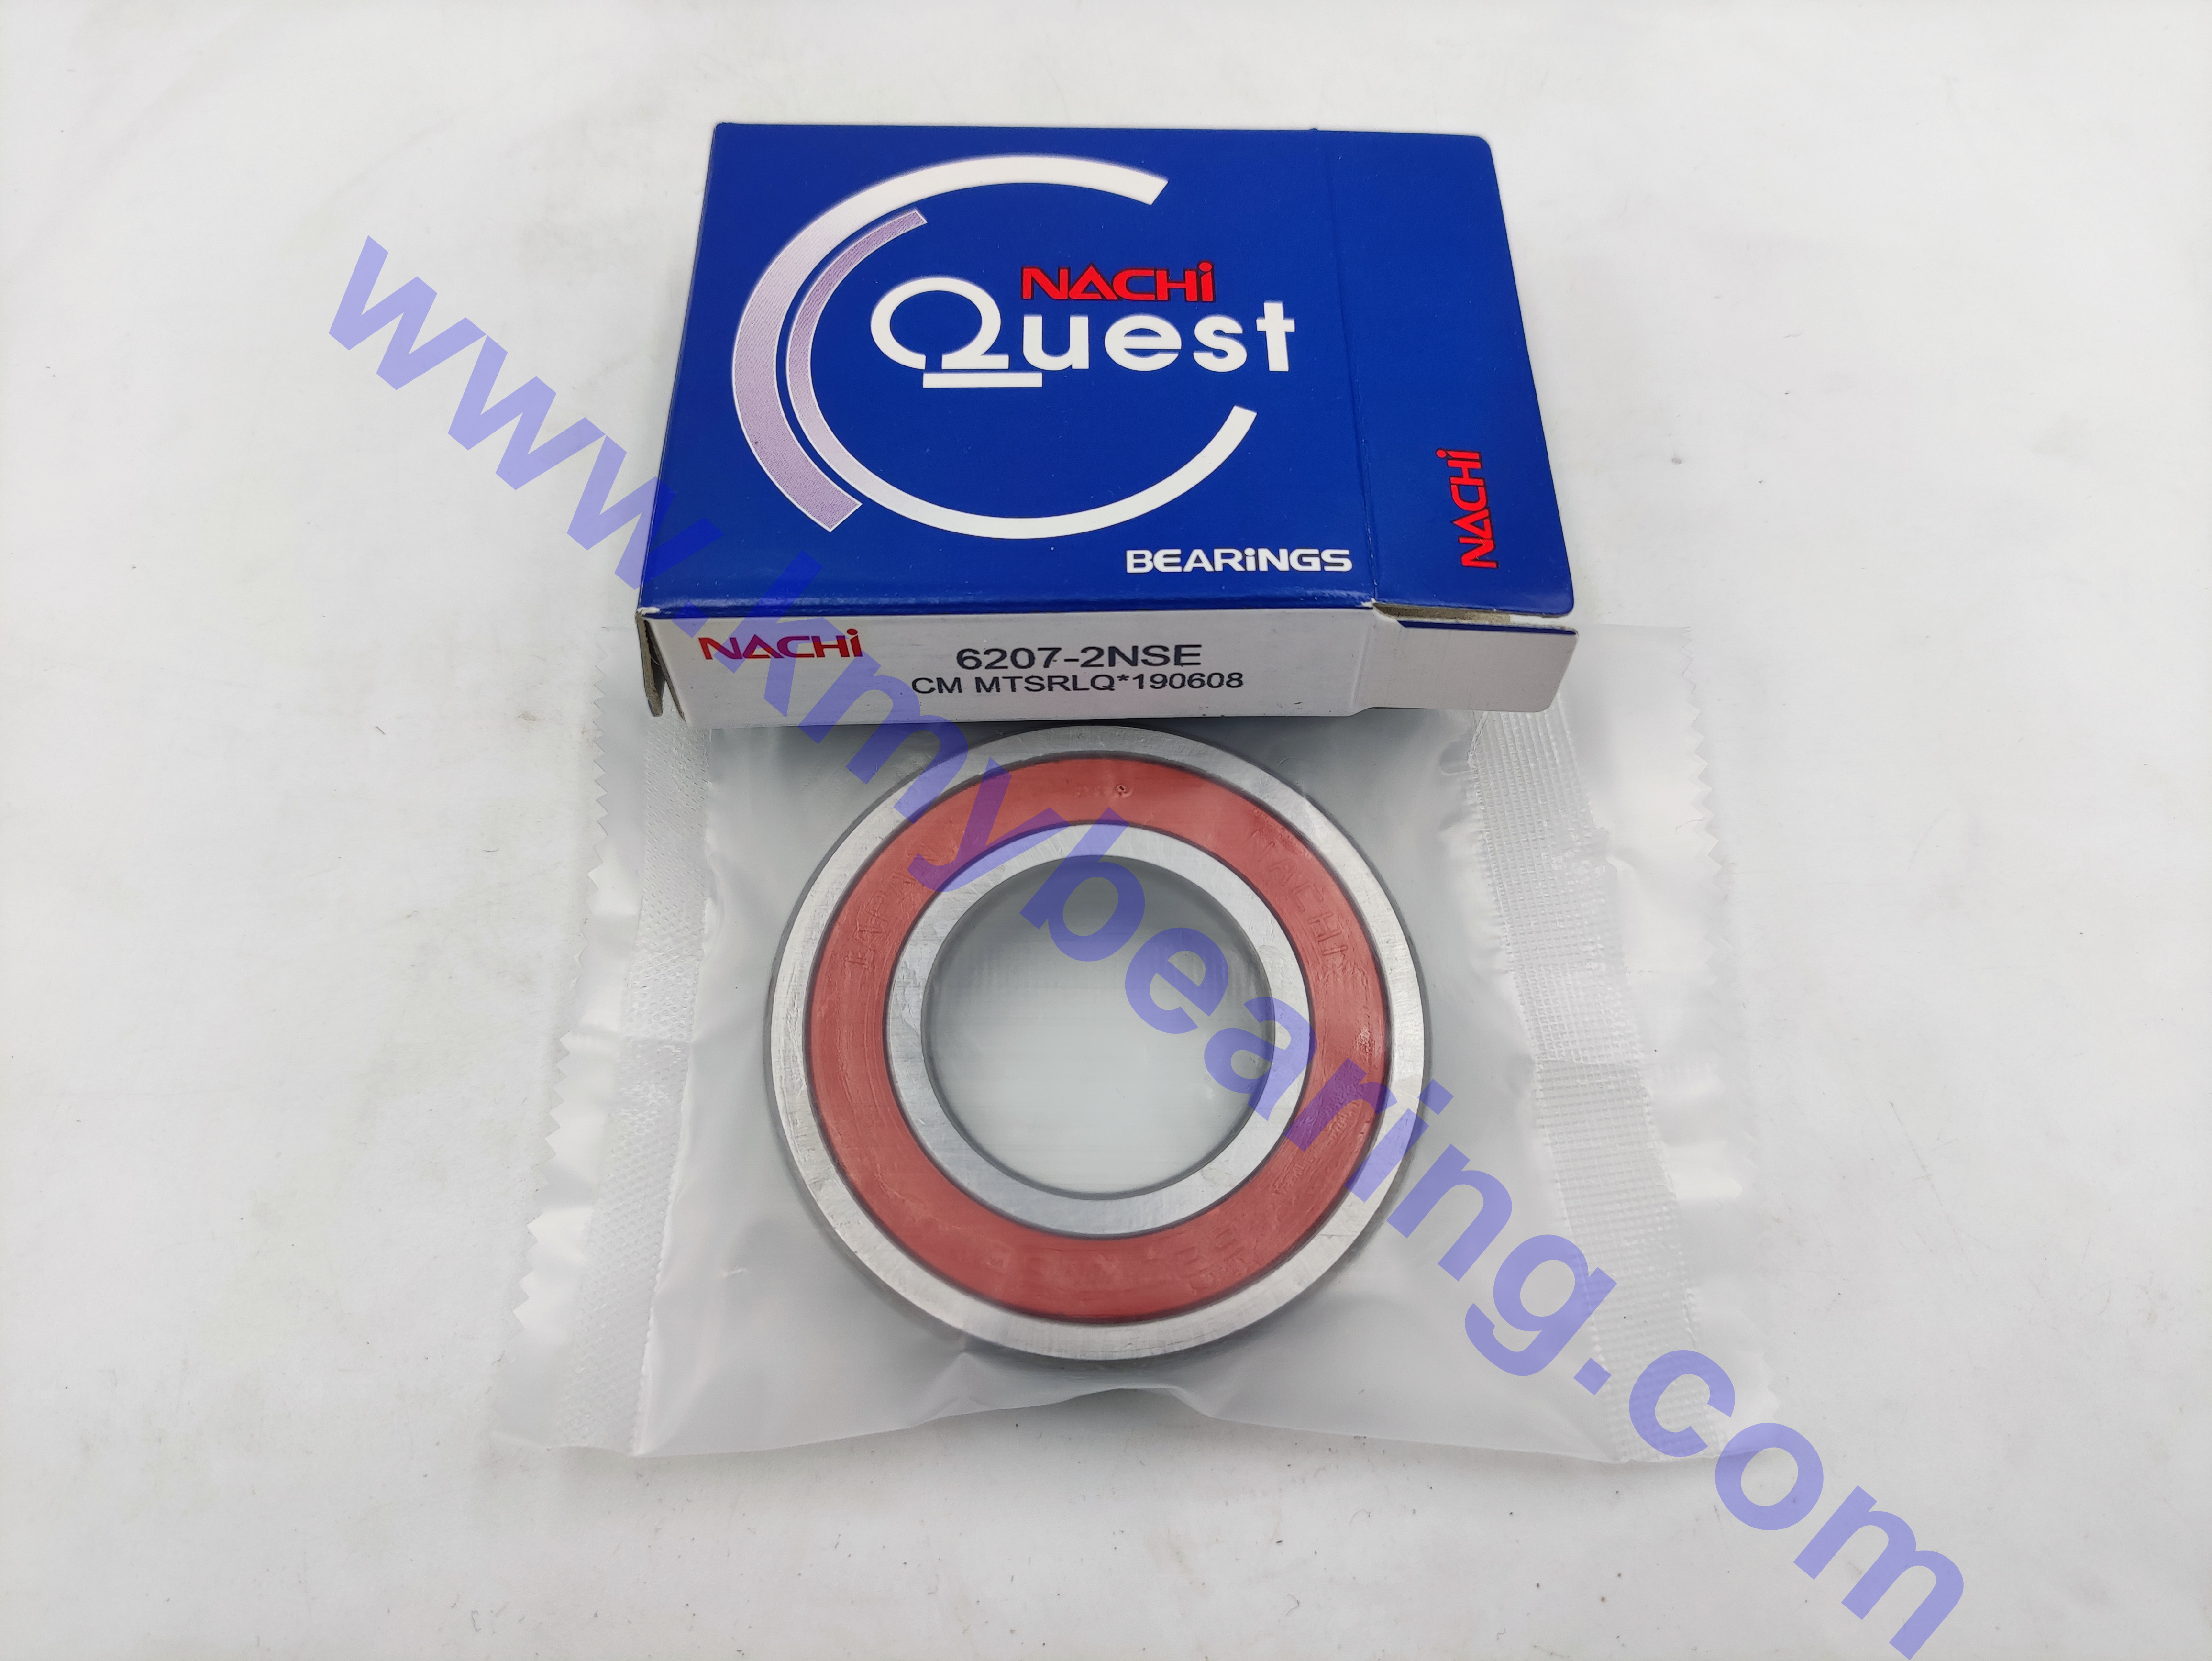 NACHI Deep Groove Ball Bearing 6007-2NSE with Double-sided adhesive cover sealing ring